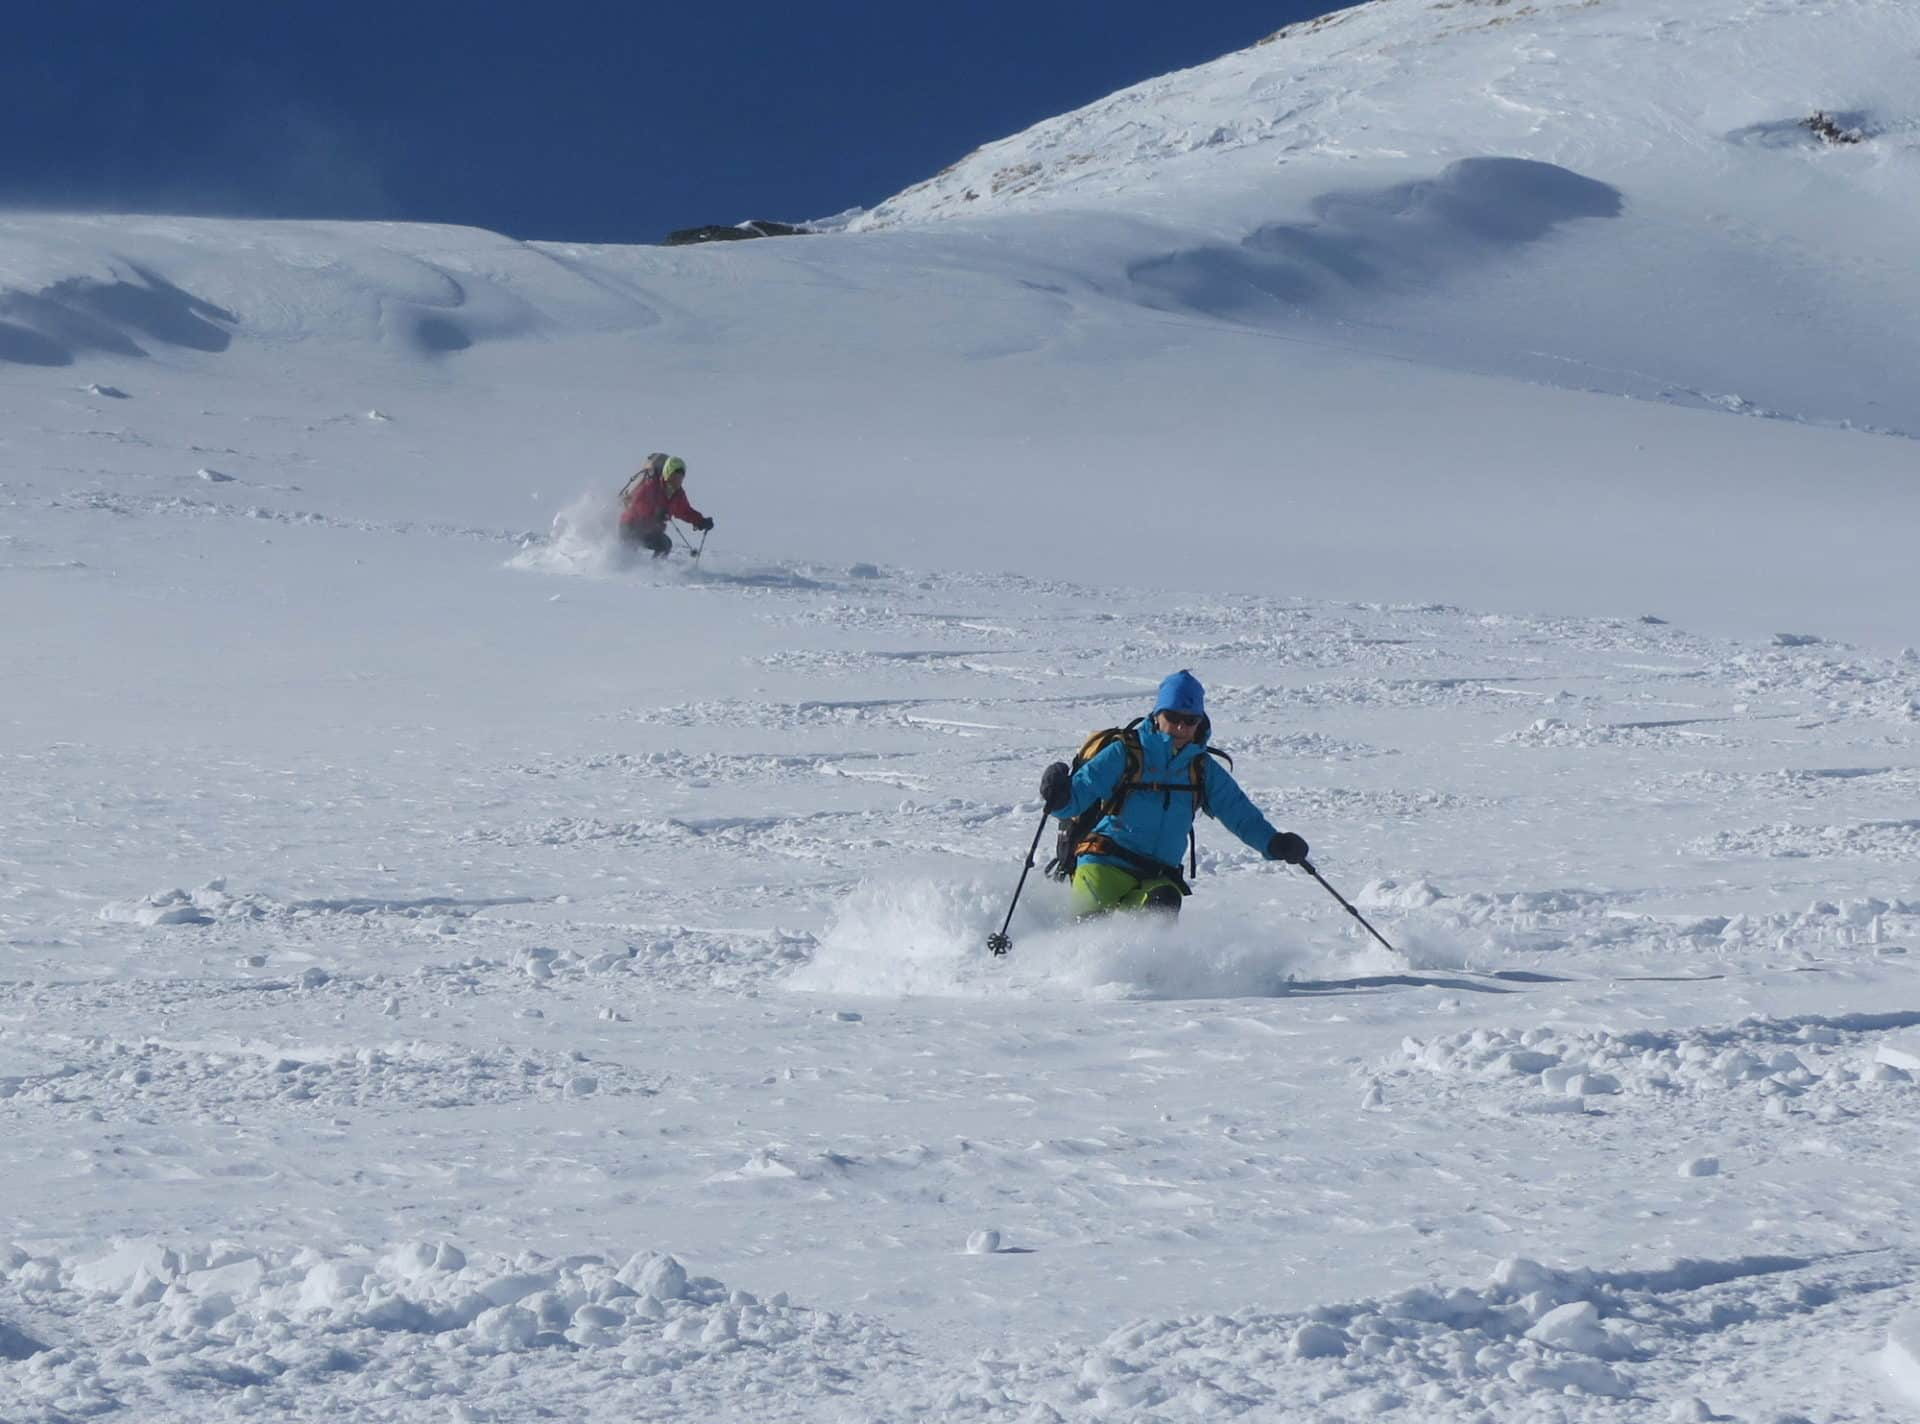 Guided ski tours in the Gastein Valley